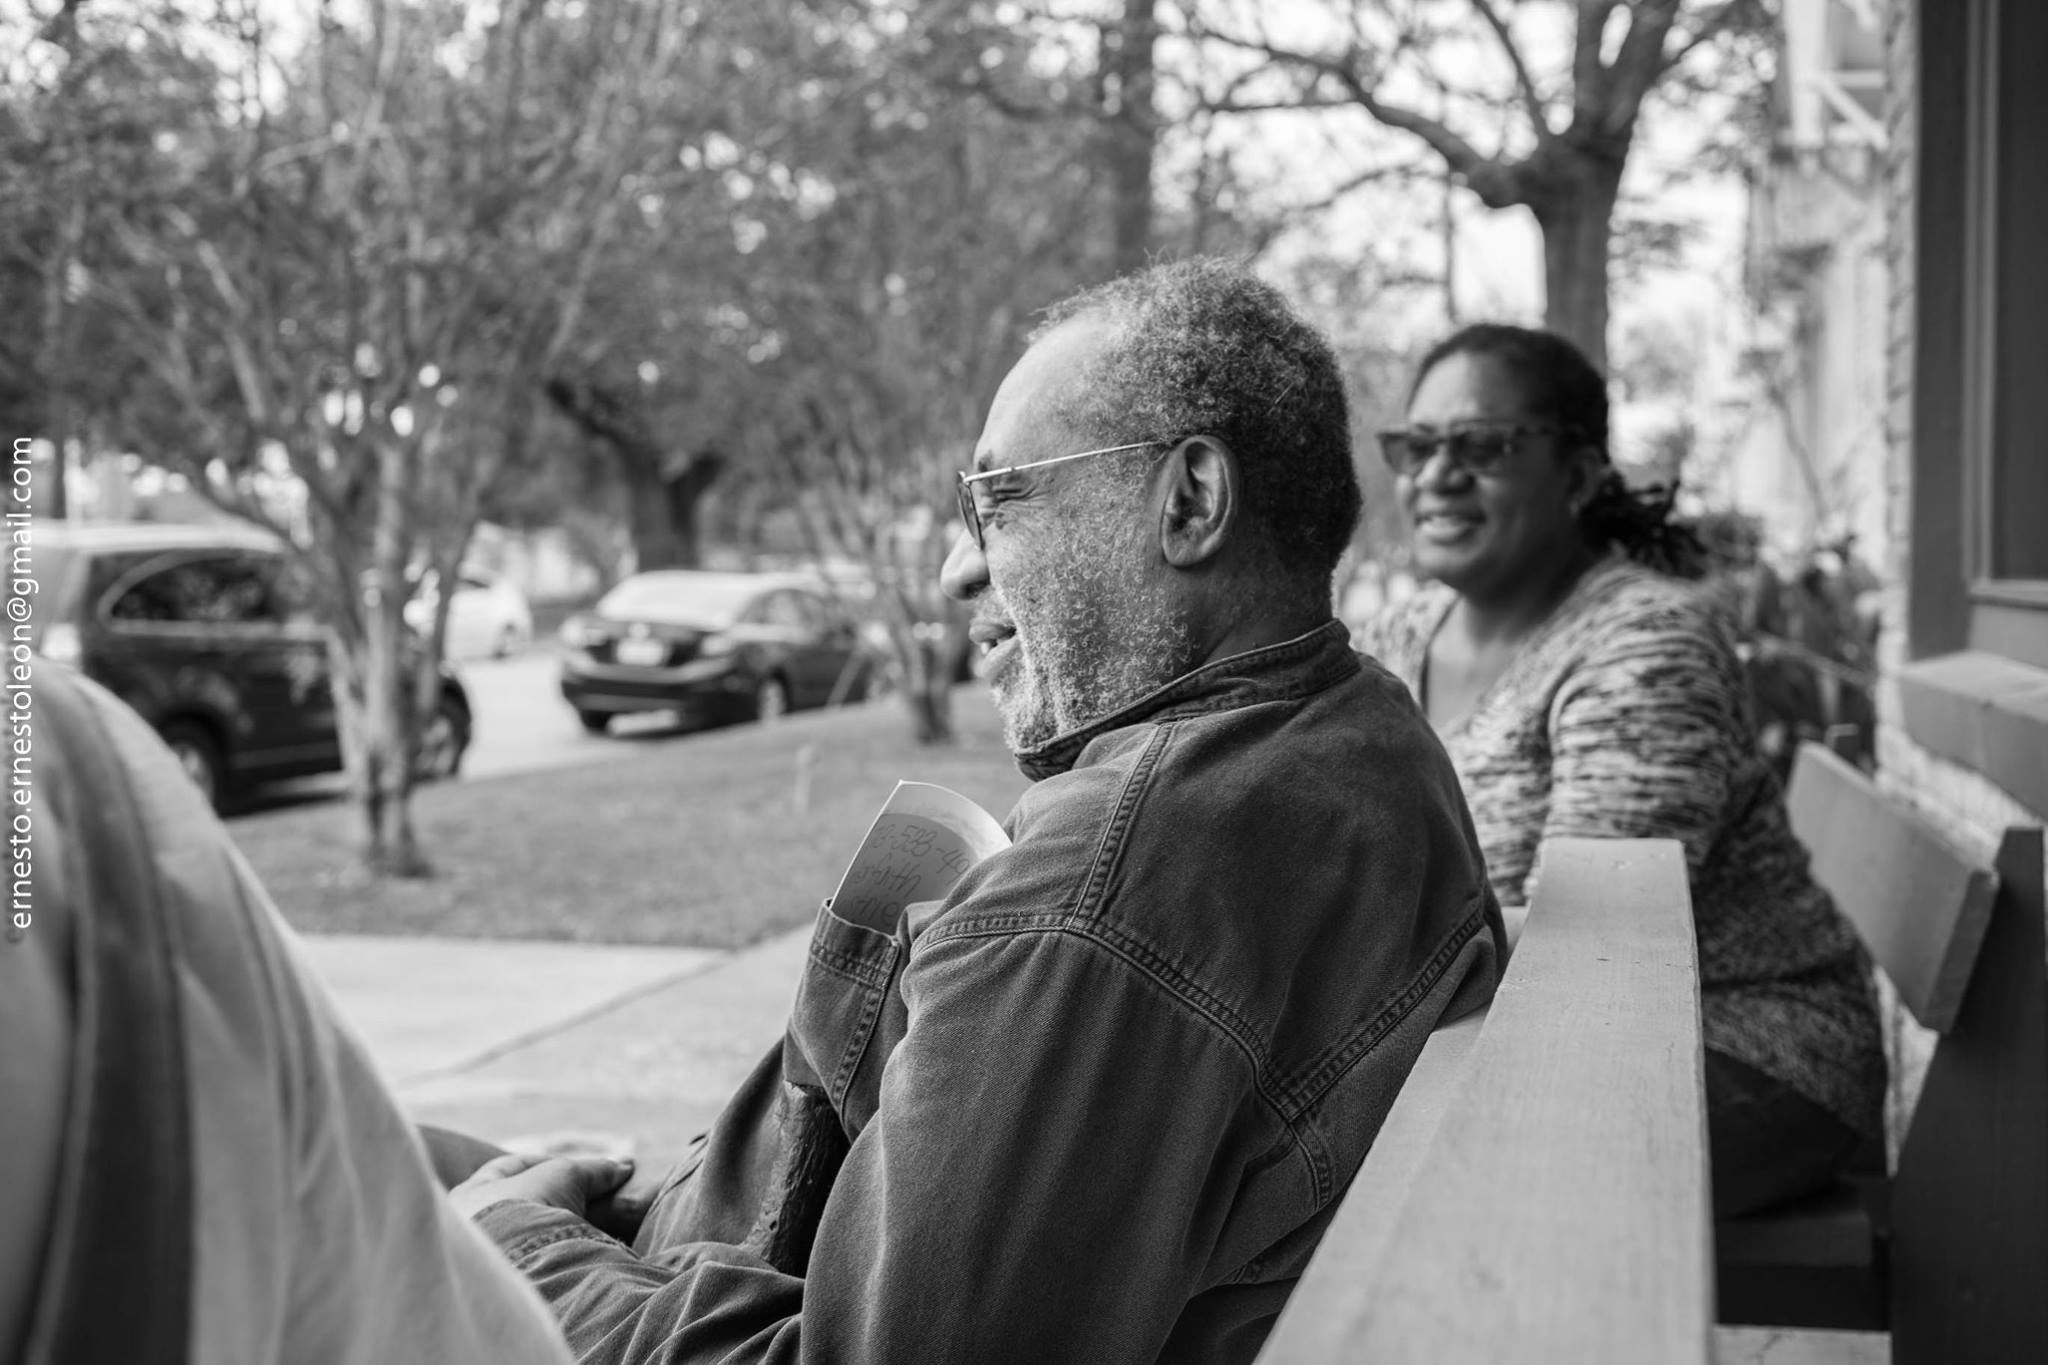 George Smith and Kaneem Smith at Project Row Houses. Photo by Ernesto Leon